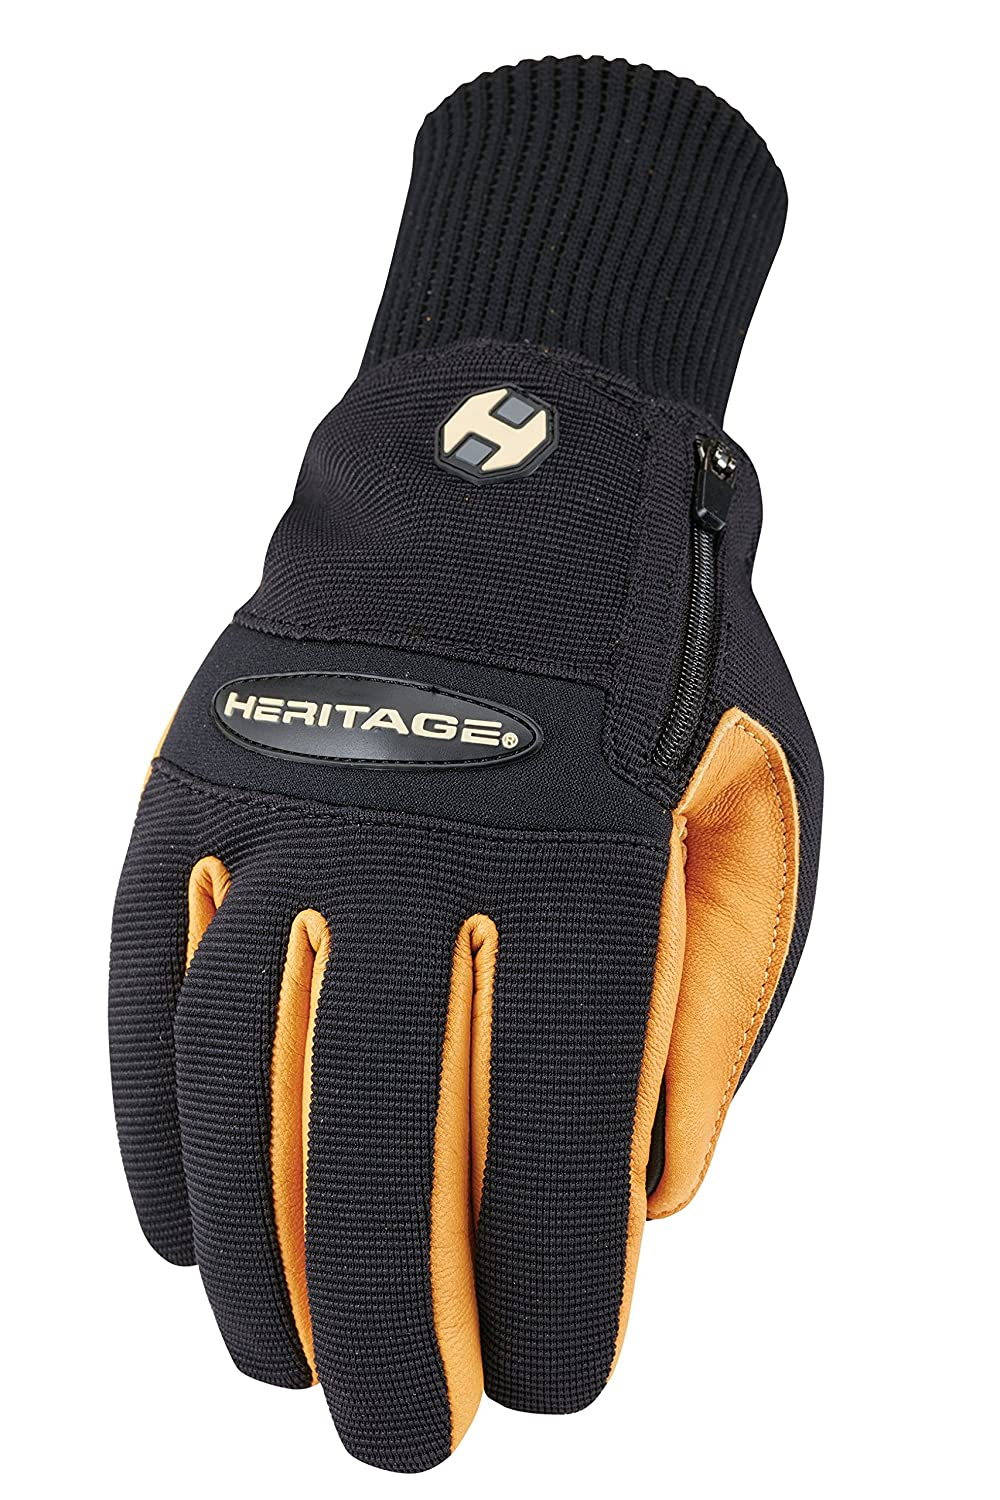 Heritage Winter Work Glove HG-28